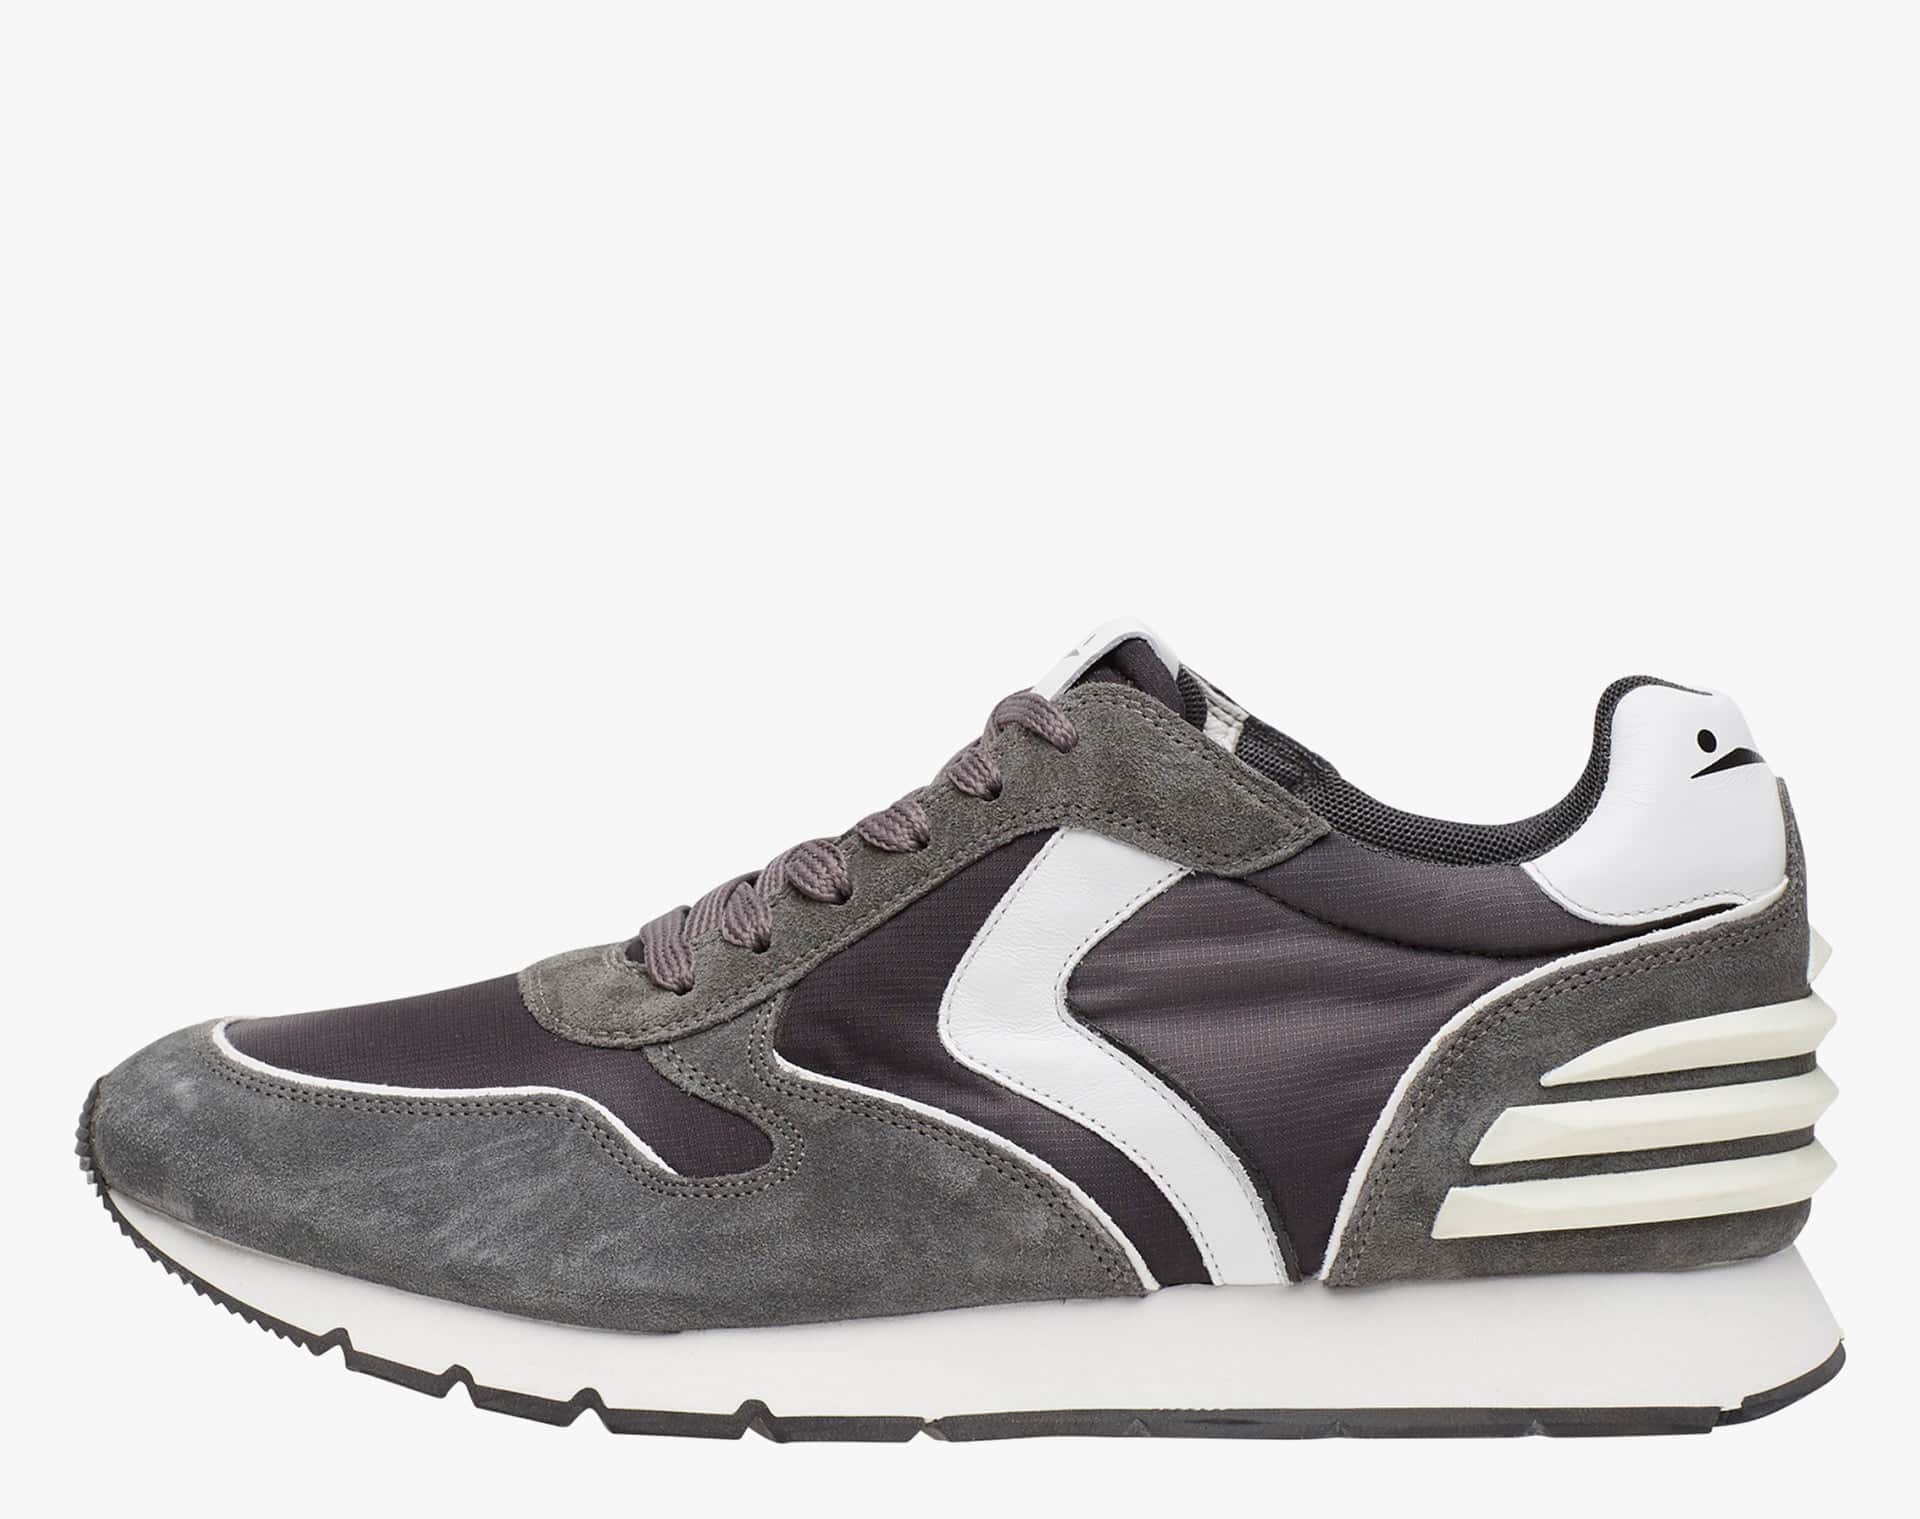 LIAM POWER - Suede and technical fabric sneakers - Grey/White